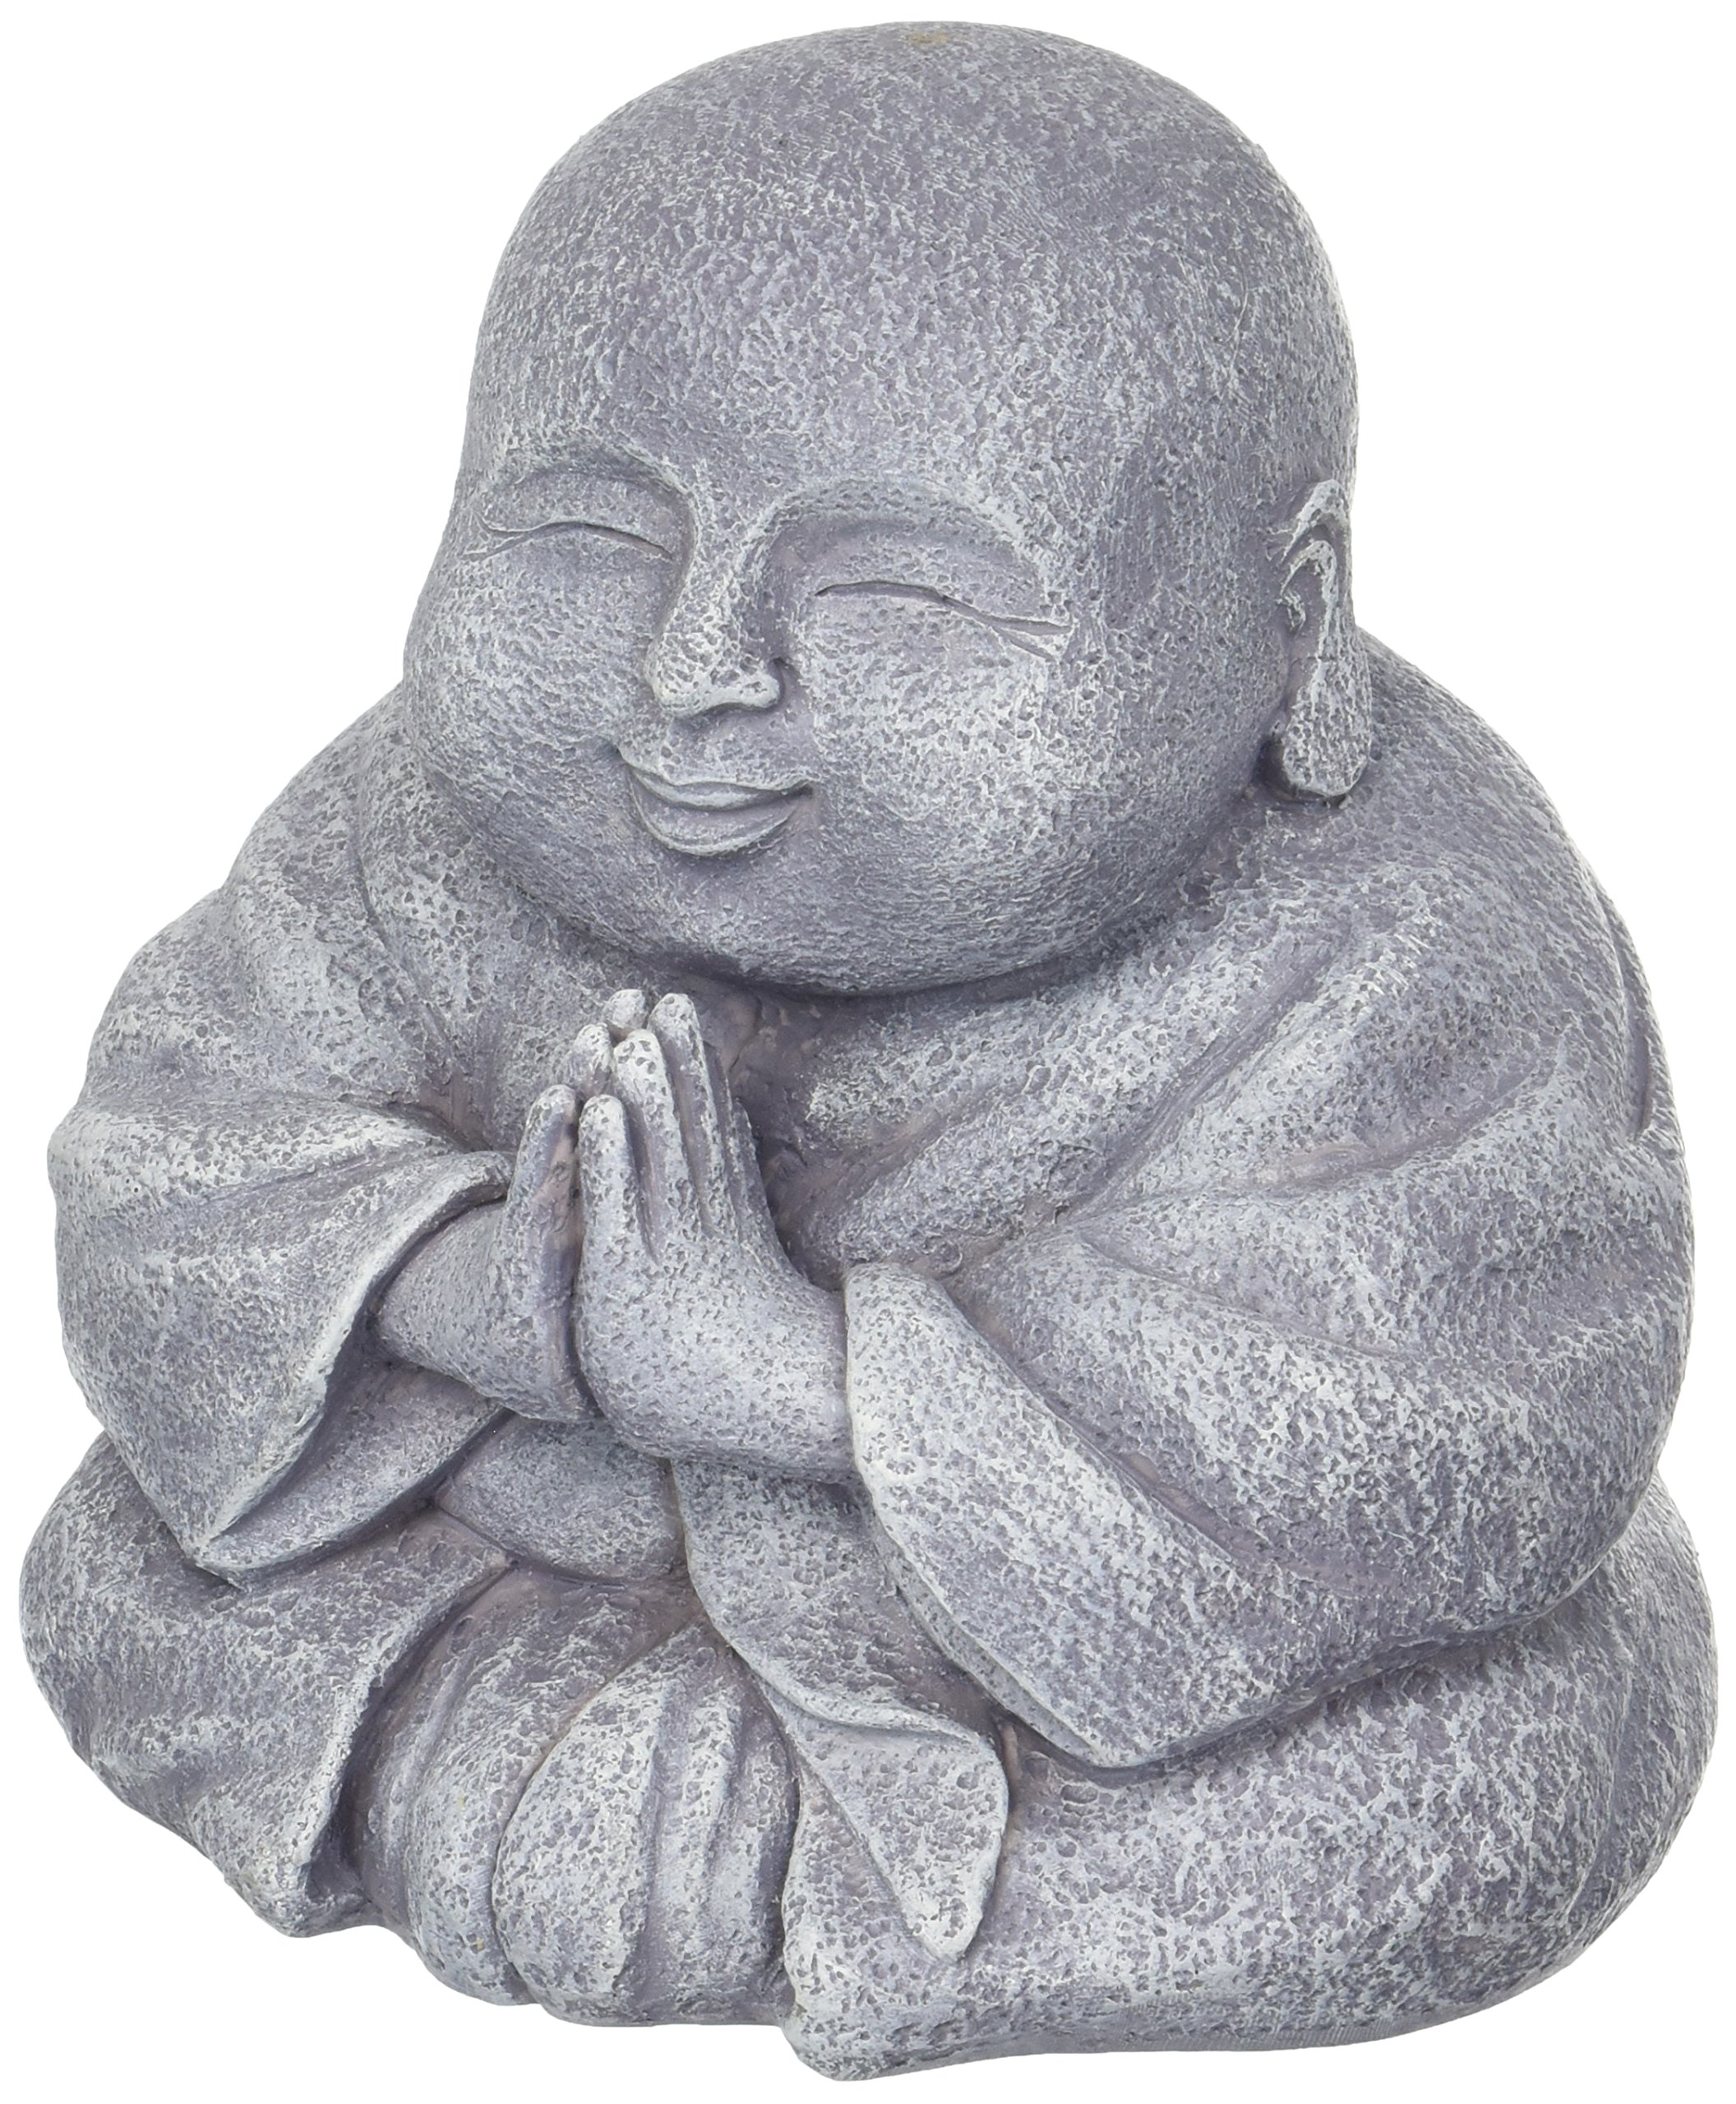 Grasslands Road Happy Praying Buddha Statue Figurine